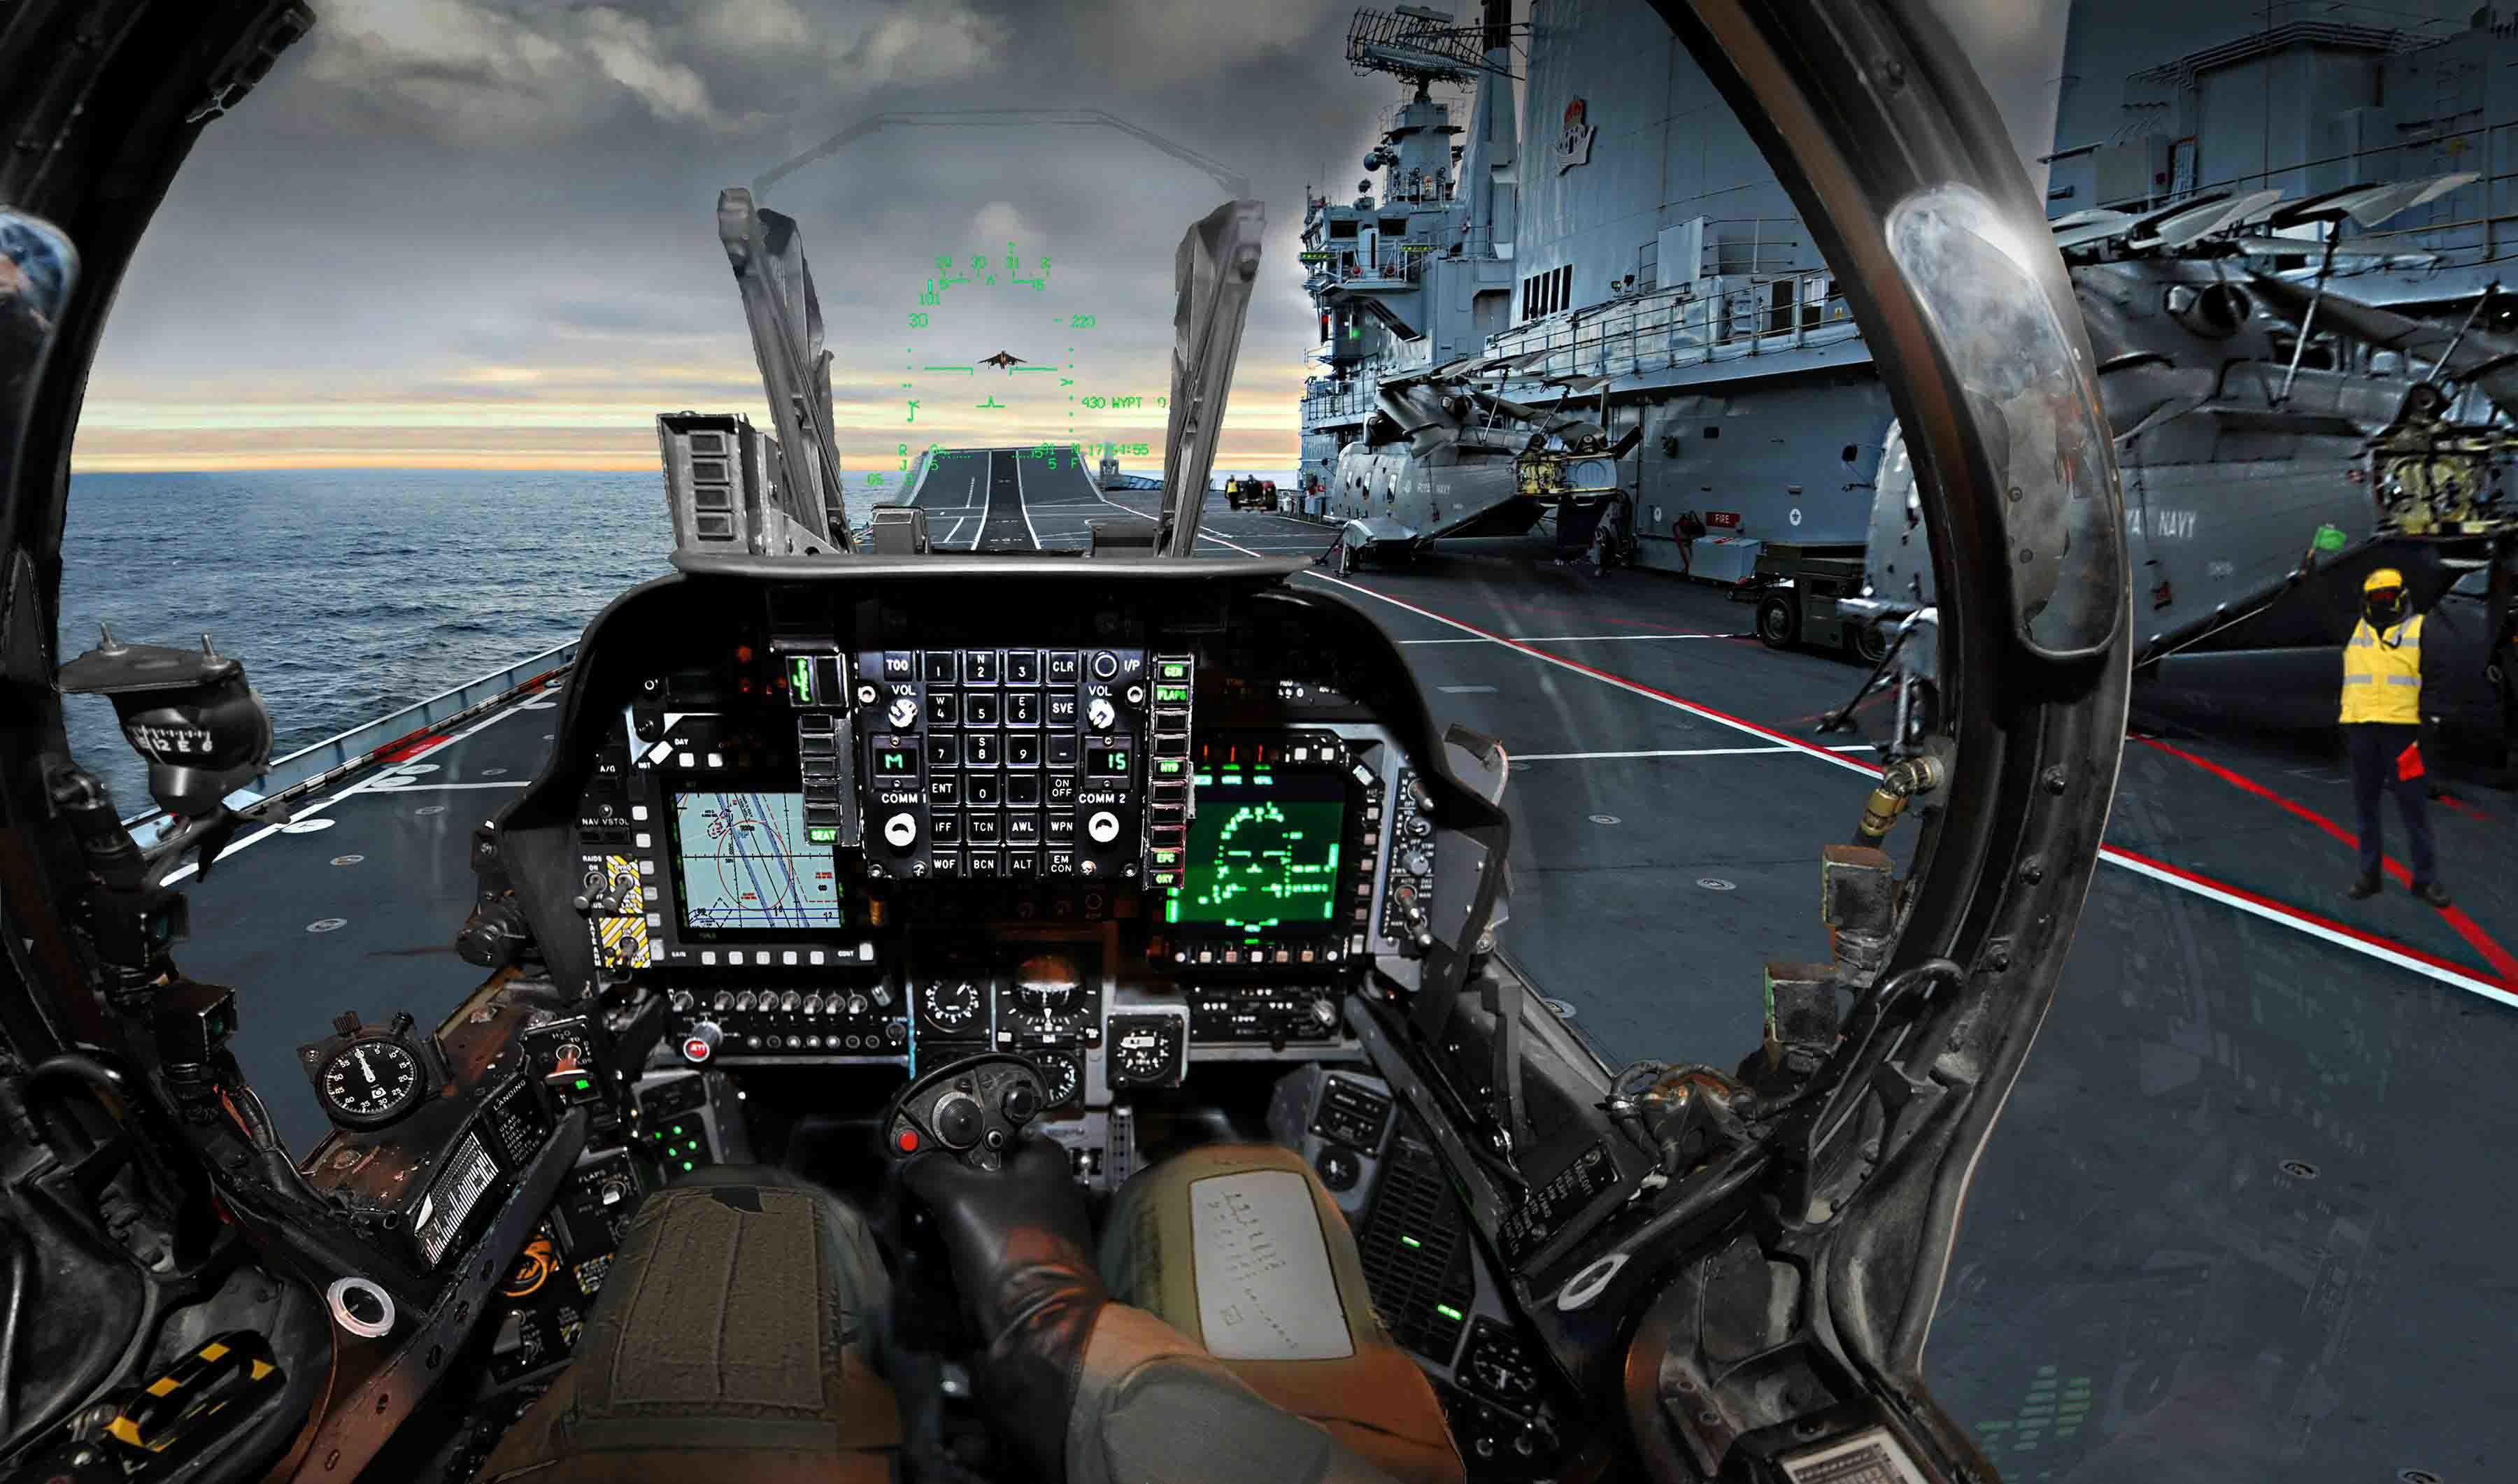 Fighter Aircraft Cockpit hd pic Fighter Aircraft Cockpit Hd wallpaper .